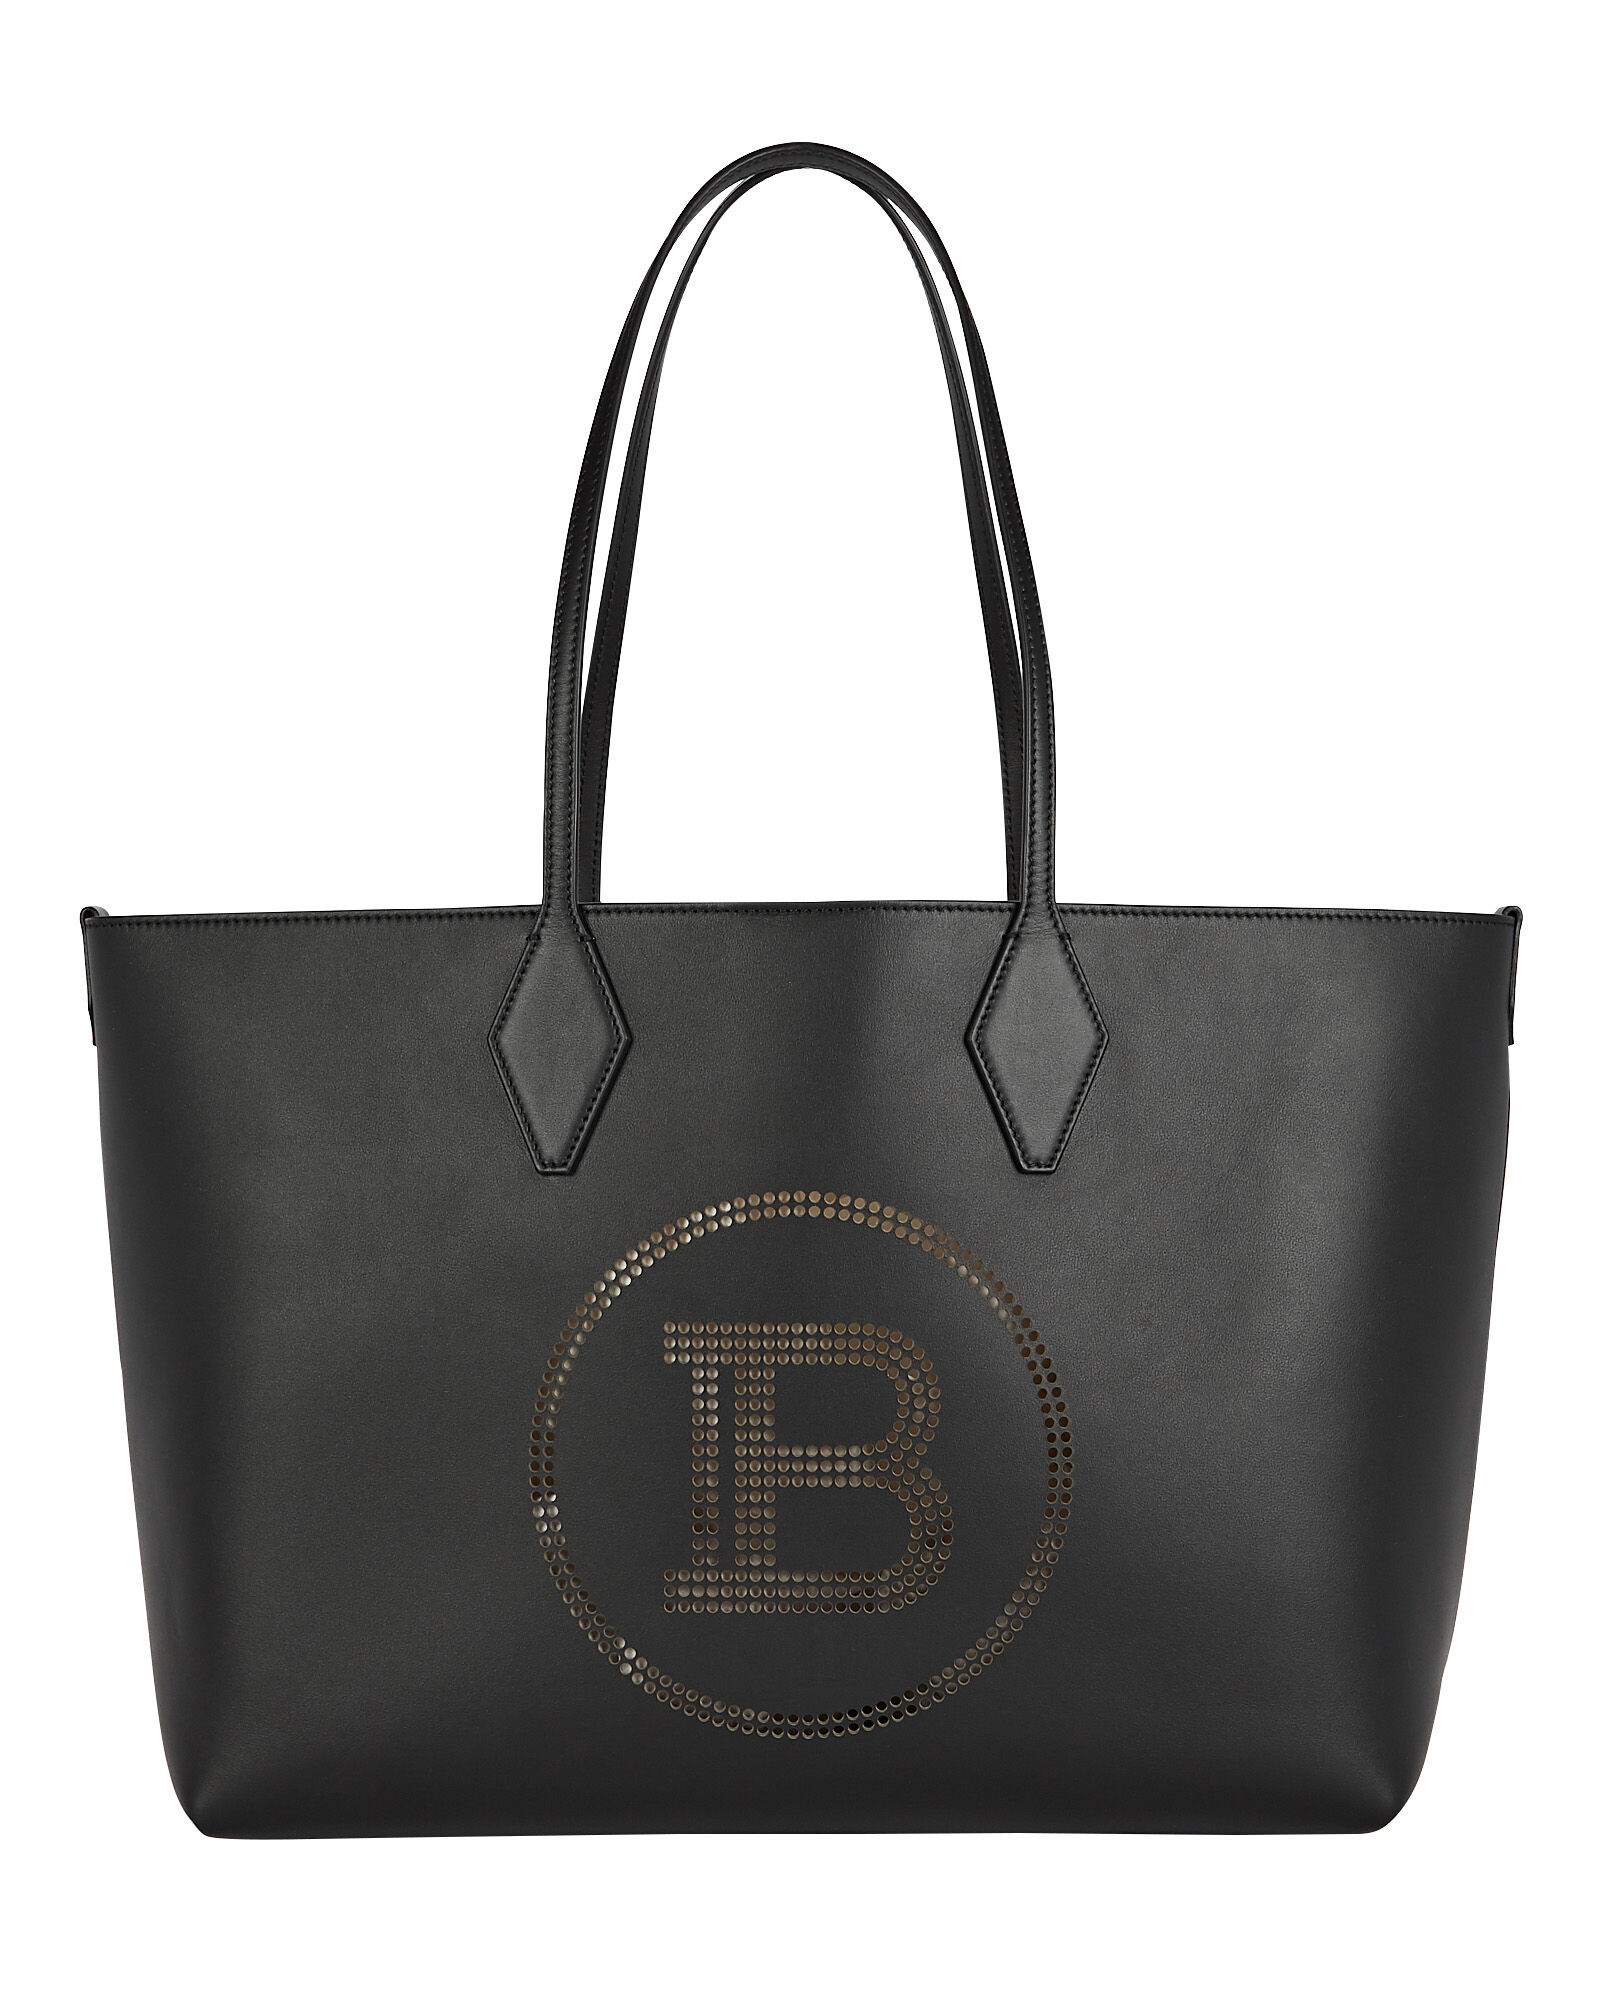 Logo 37 Shopper Tote Bag, BLACK, hi-res